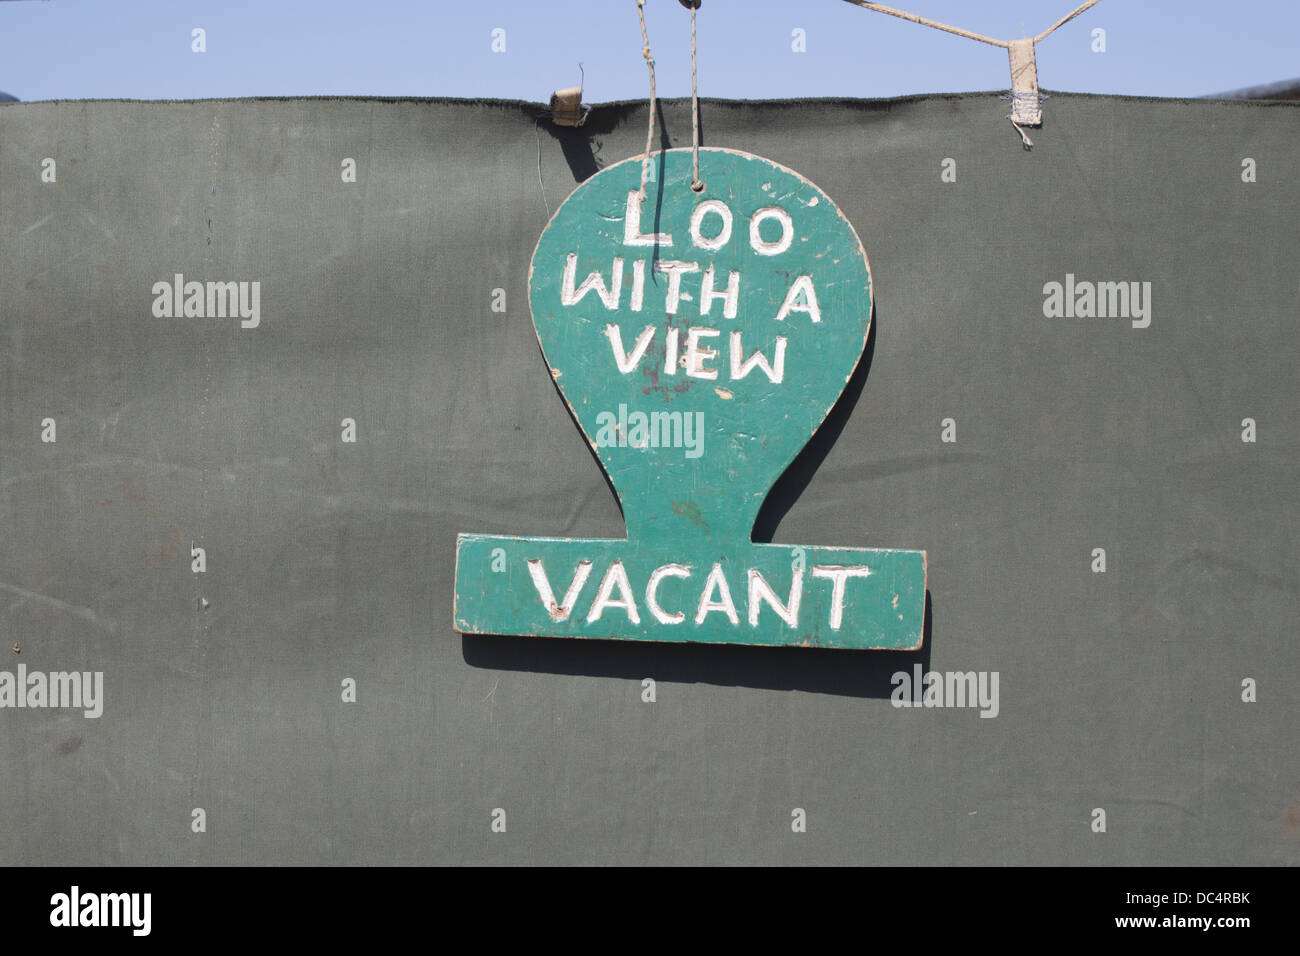 sign-for-the-loo-with-a-view-on-the-serengeti-plain-tanzania-africa-DC4RBK.jpg